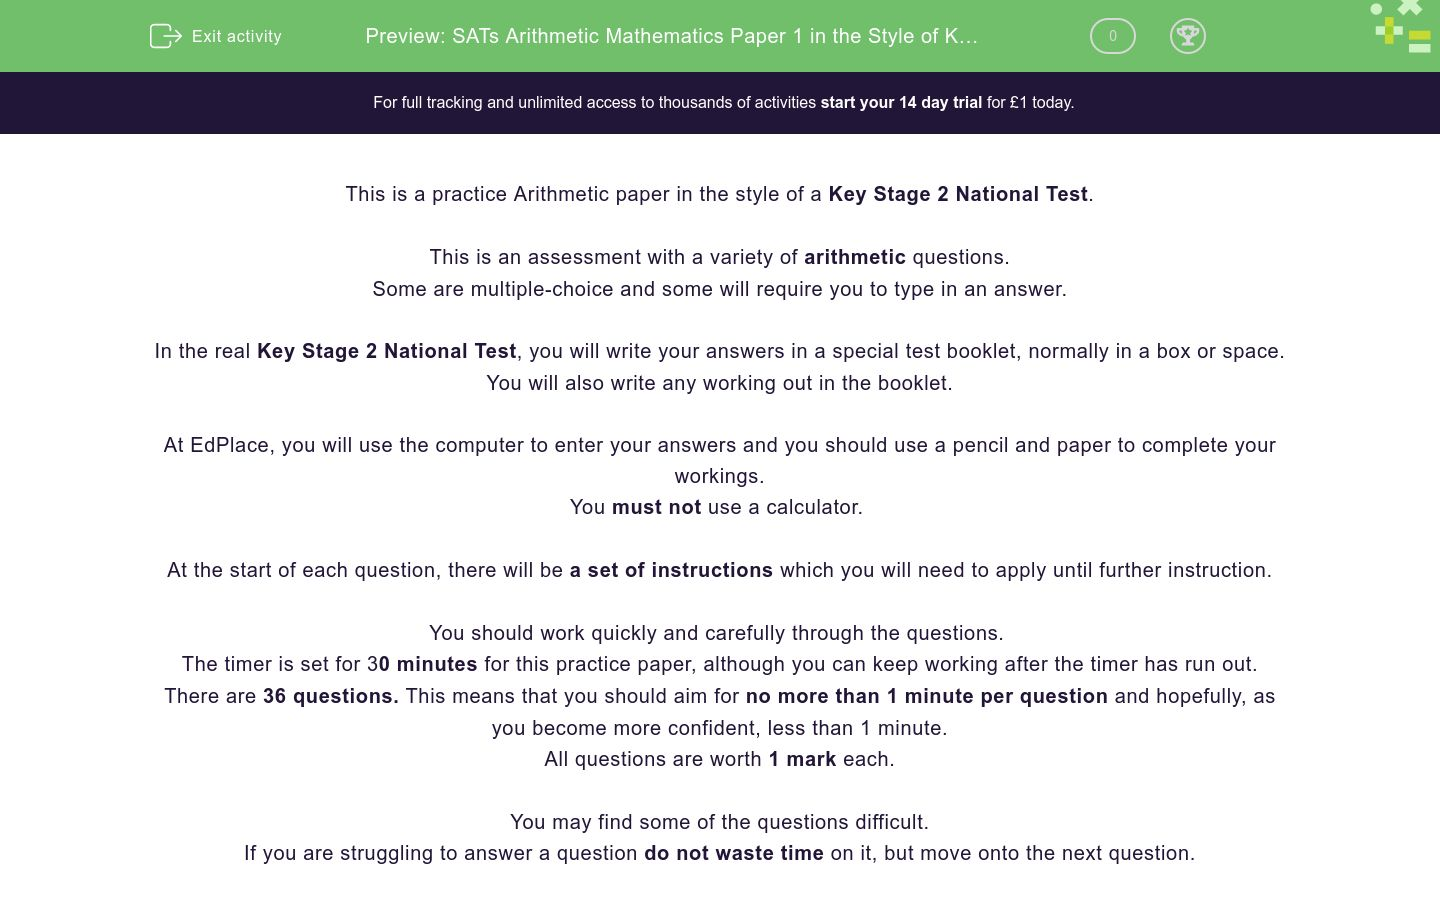 'SATs Arithmetic Mathematics Paper 1 in the Style of Key Stage 2 National Tests (Practice 1)' worksheet